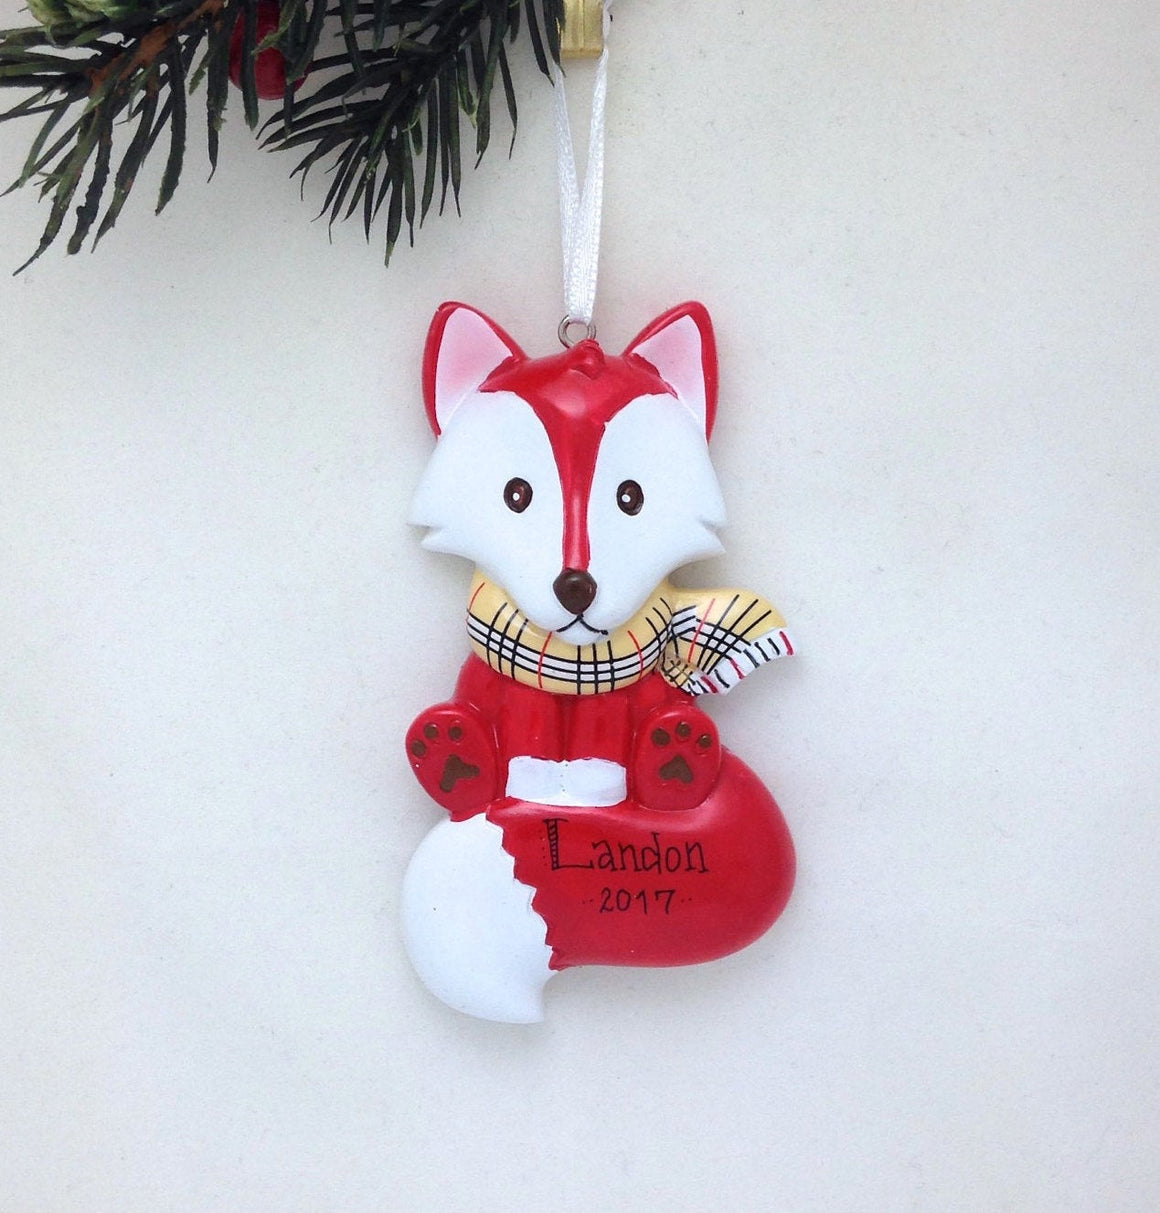 Personalized Christmas Ornament - Red Fox with Burberry Scarf - Hand personalized Christmas ornament